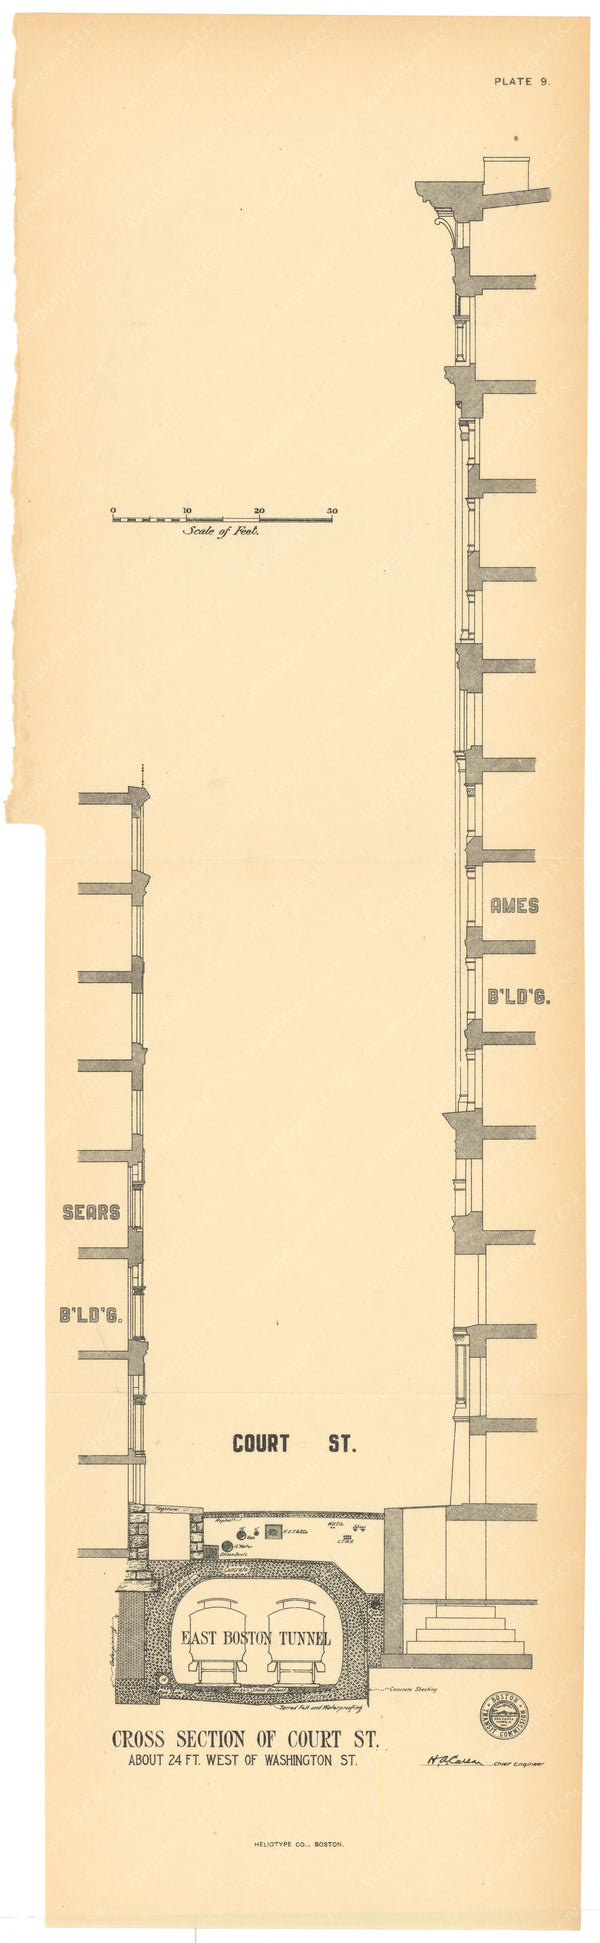 BTC Annual Report 10, 1904 Plate 09: East Boston Tunnel Cross Section at Court Street